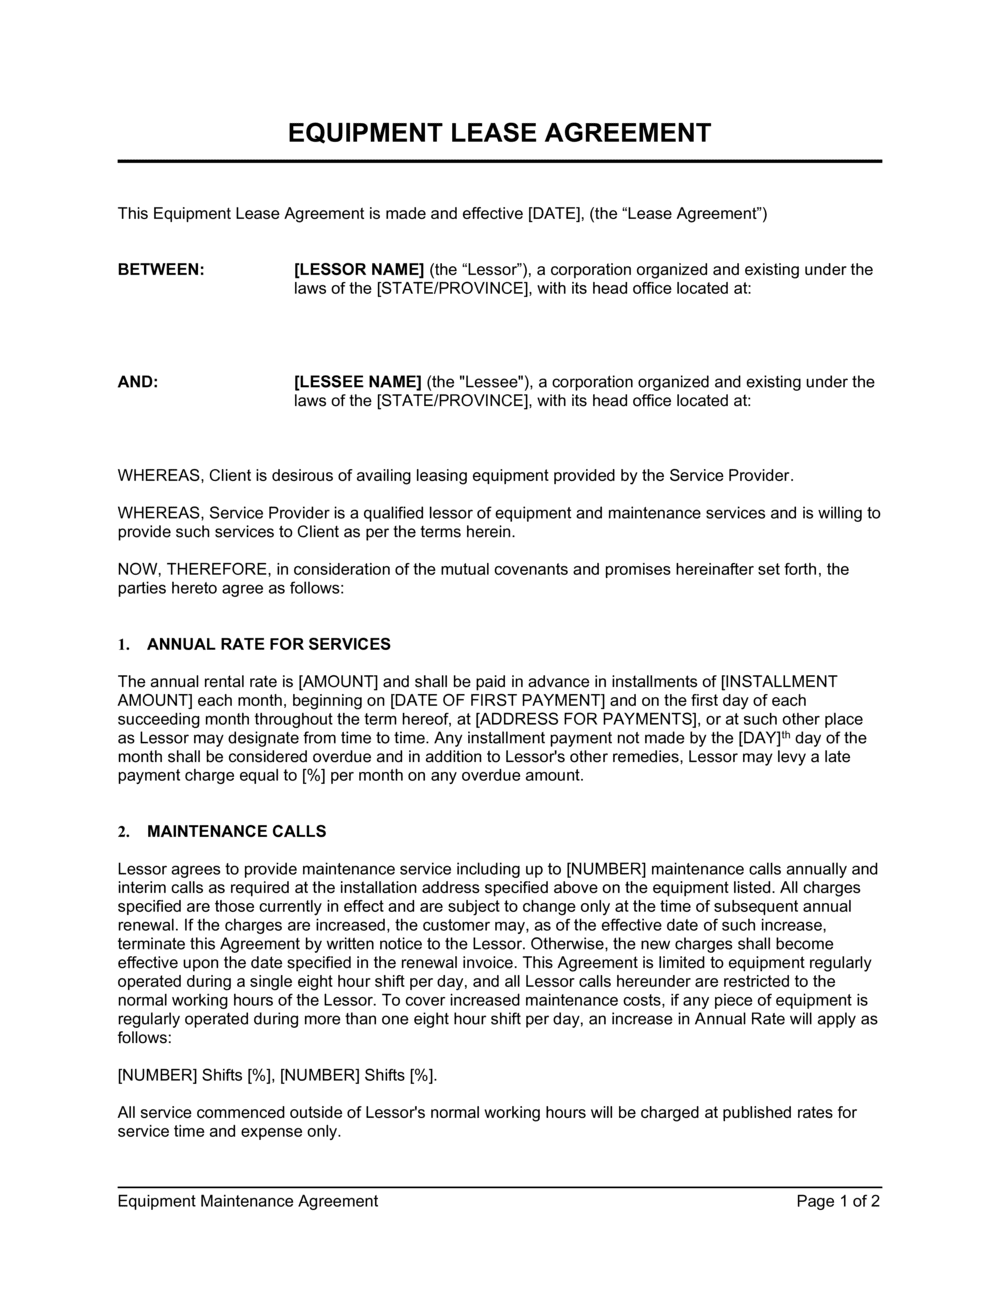 Business-in-a-Box's Equipment Lease Agreement Short Template